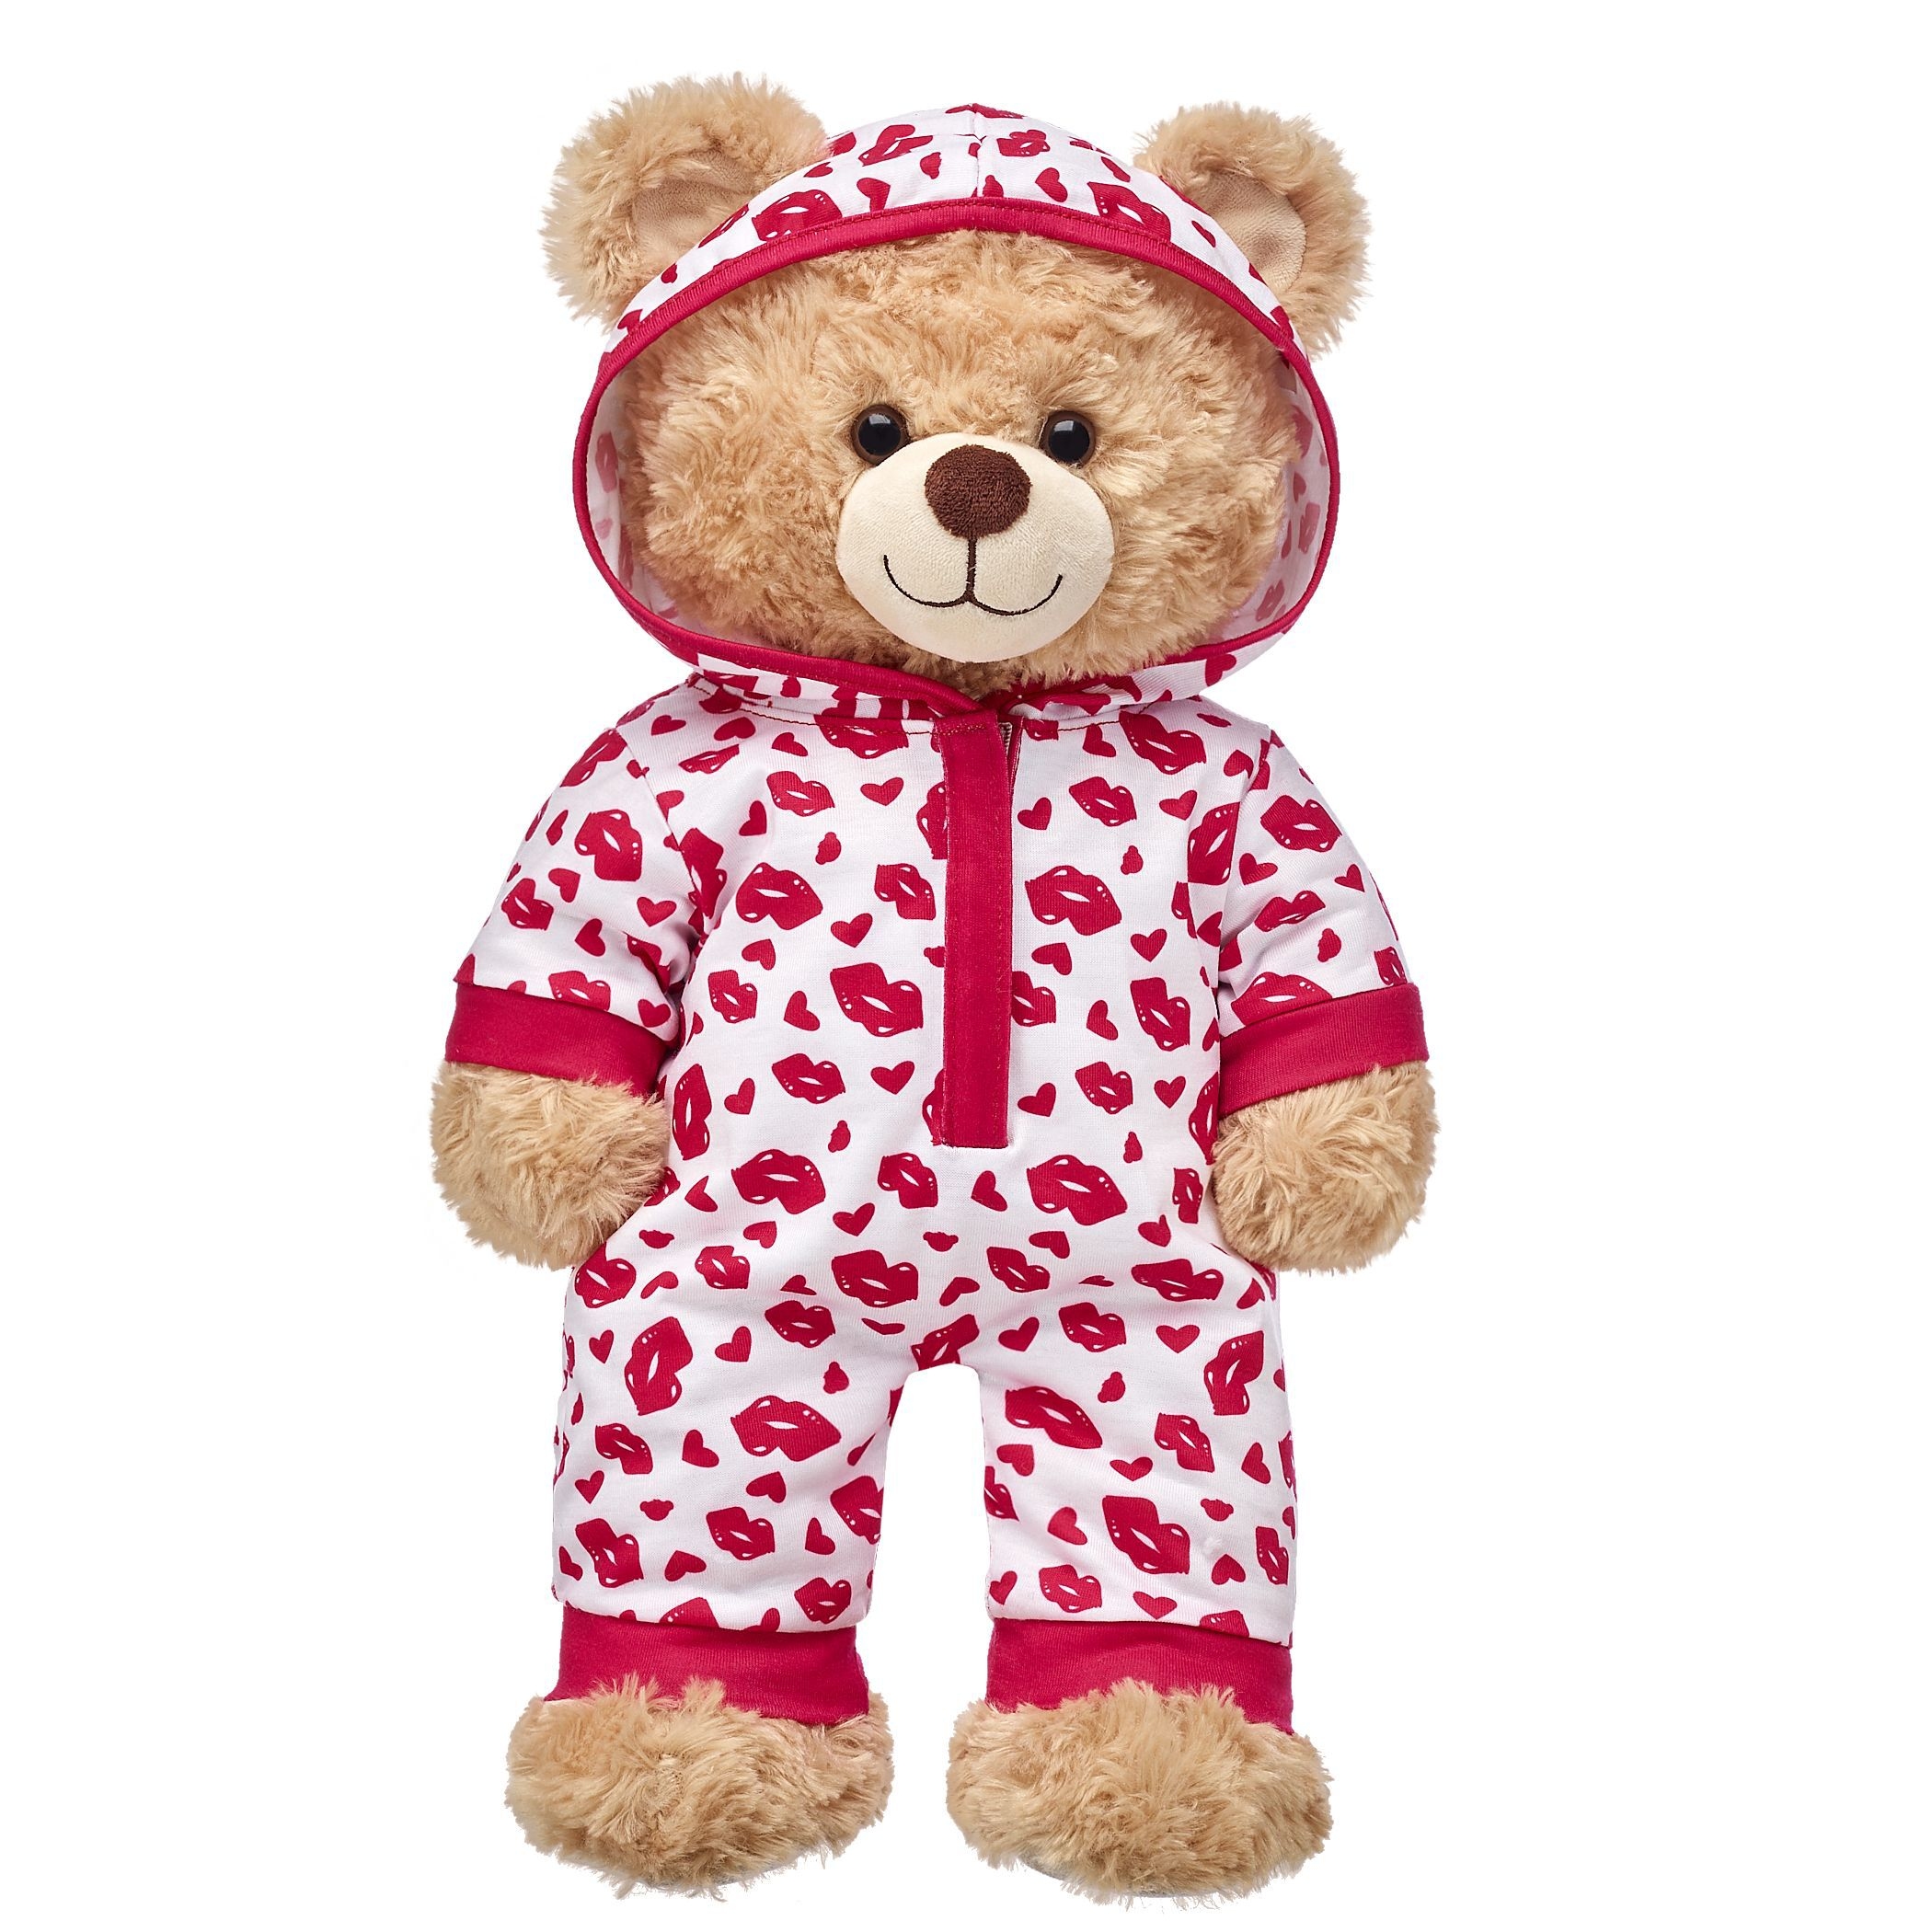 photograph relating to Free Printable Build a Bear Clothes Patterns named Sleepwear Dresses Establish-A-Bear®